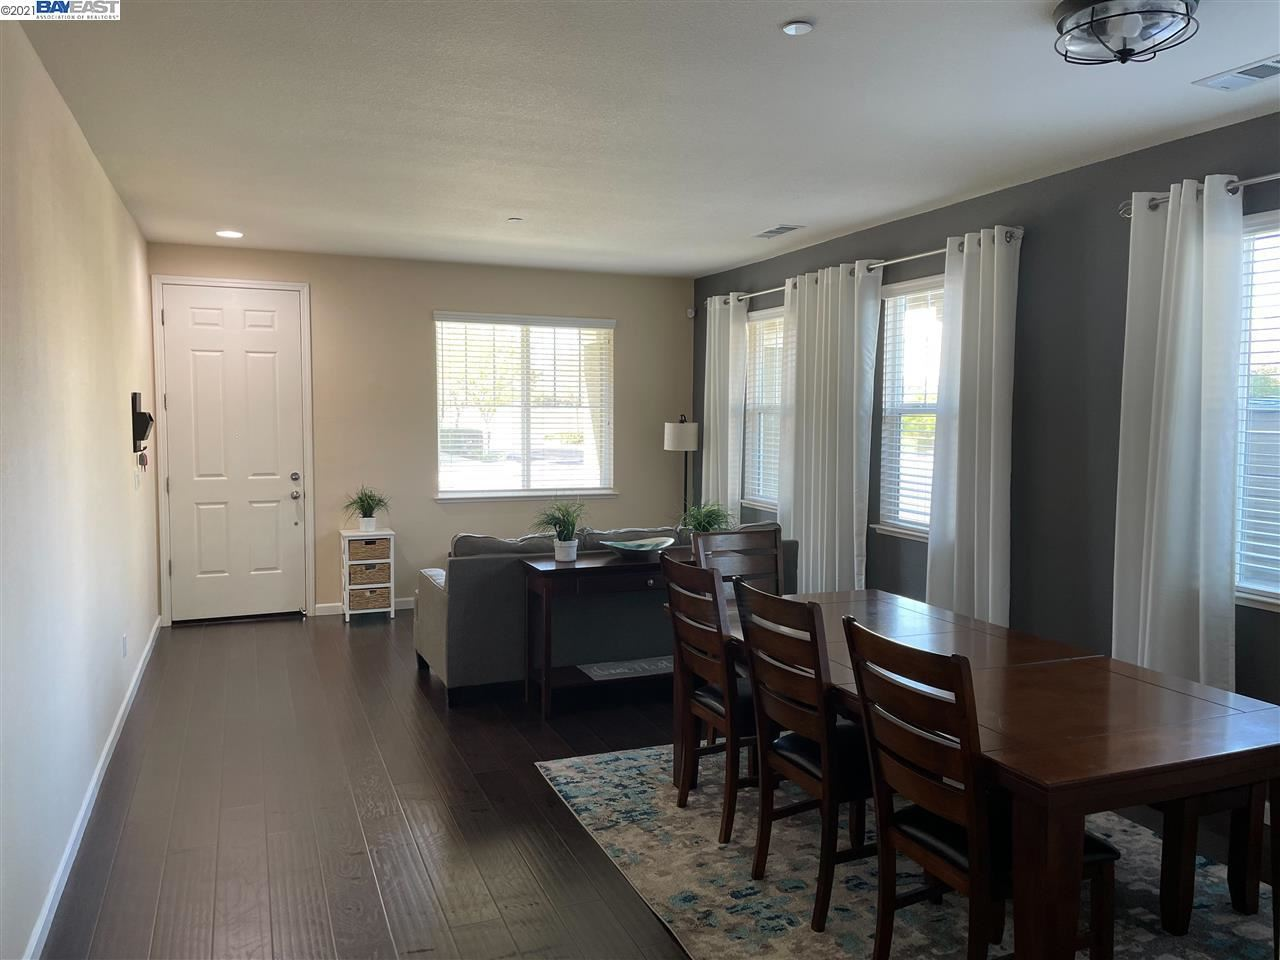 Photo of 2273 Black Stone Dr, BRENTWOOD, CA 94513 (MLS # 40946956)